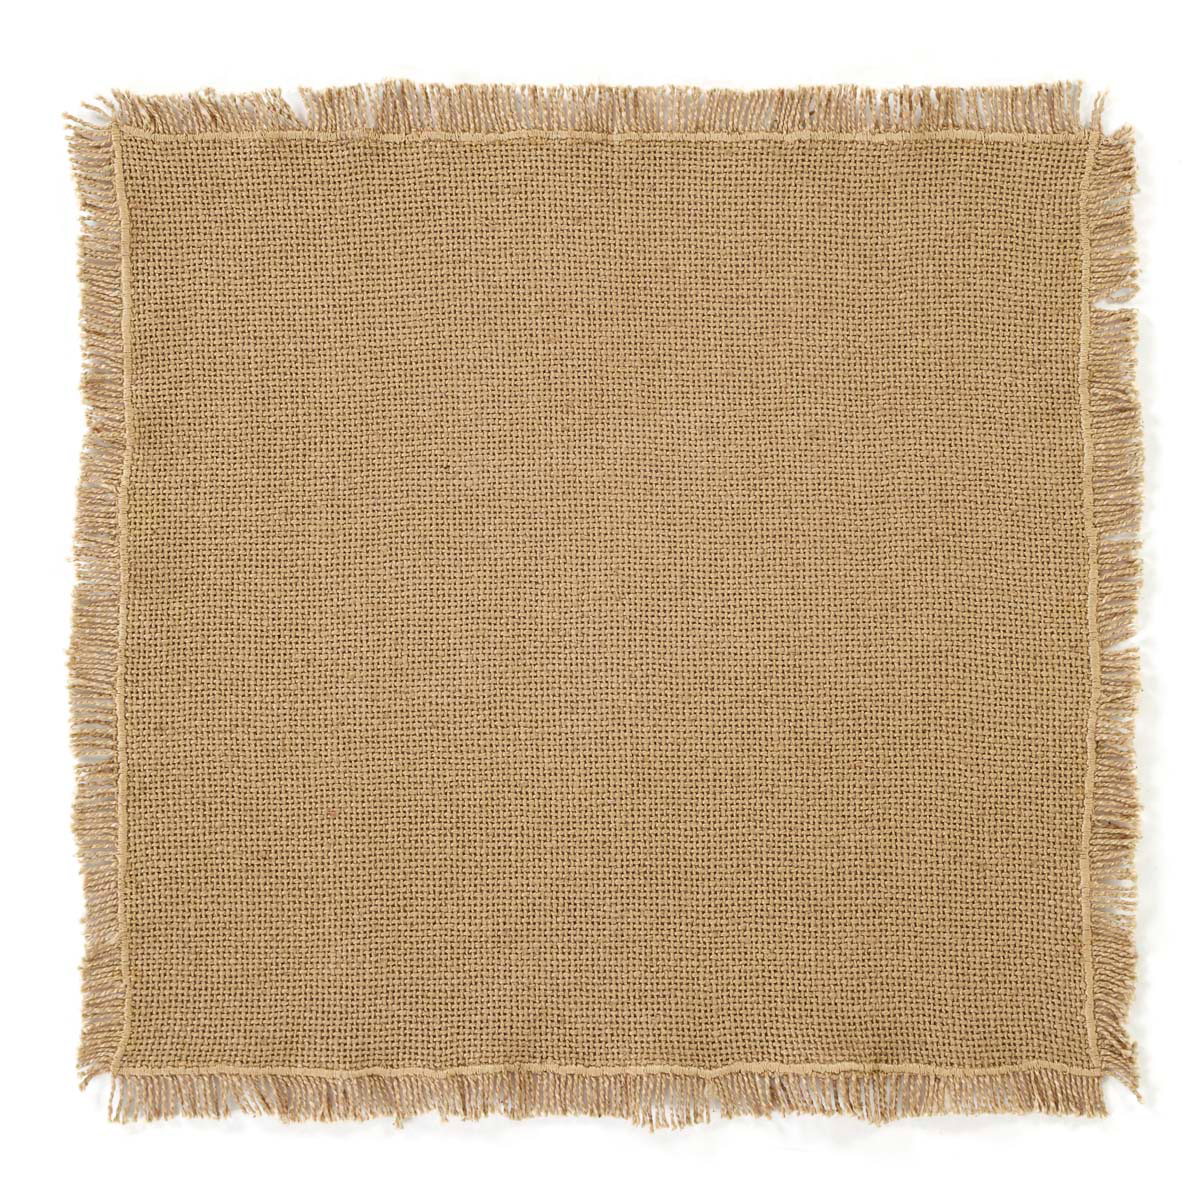 BURLAP NATURAL Tablemat Fringed - Set of 6 - 13x13 - Soft Cotton - VHC Brands